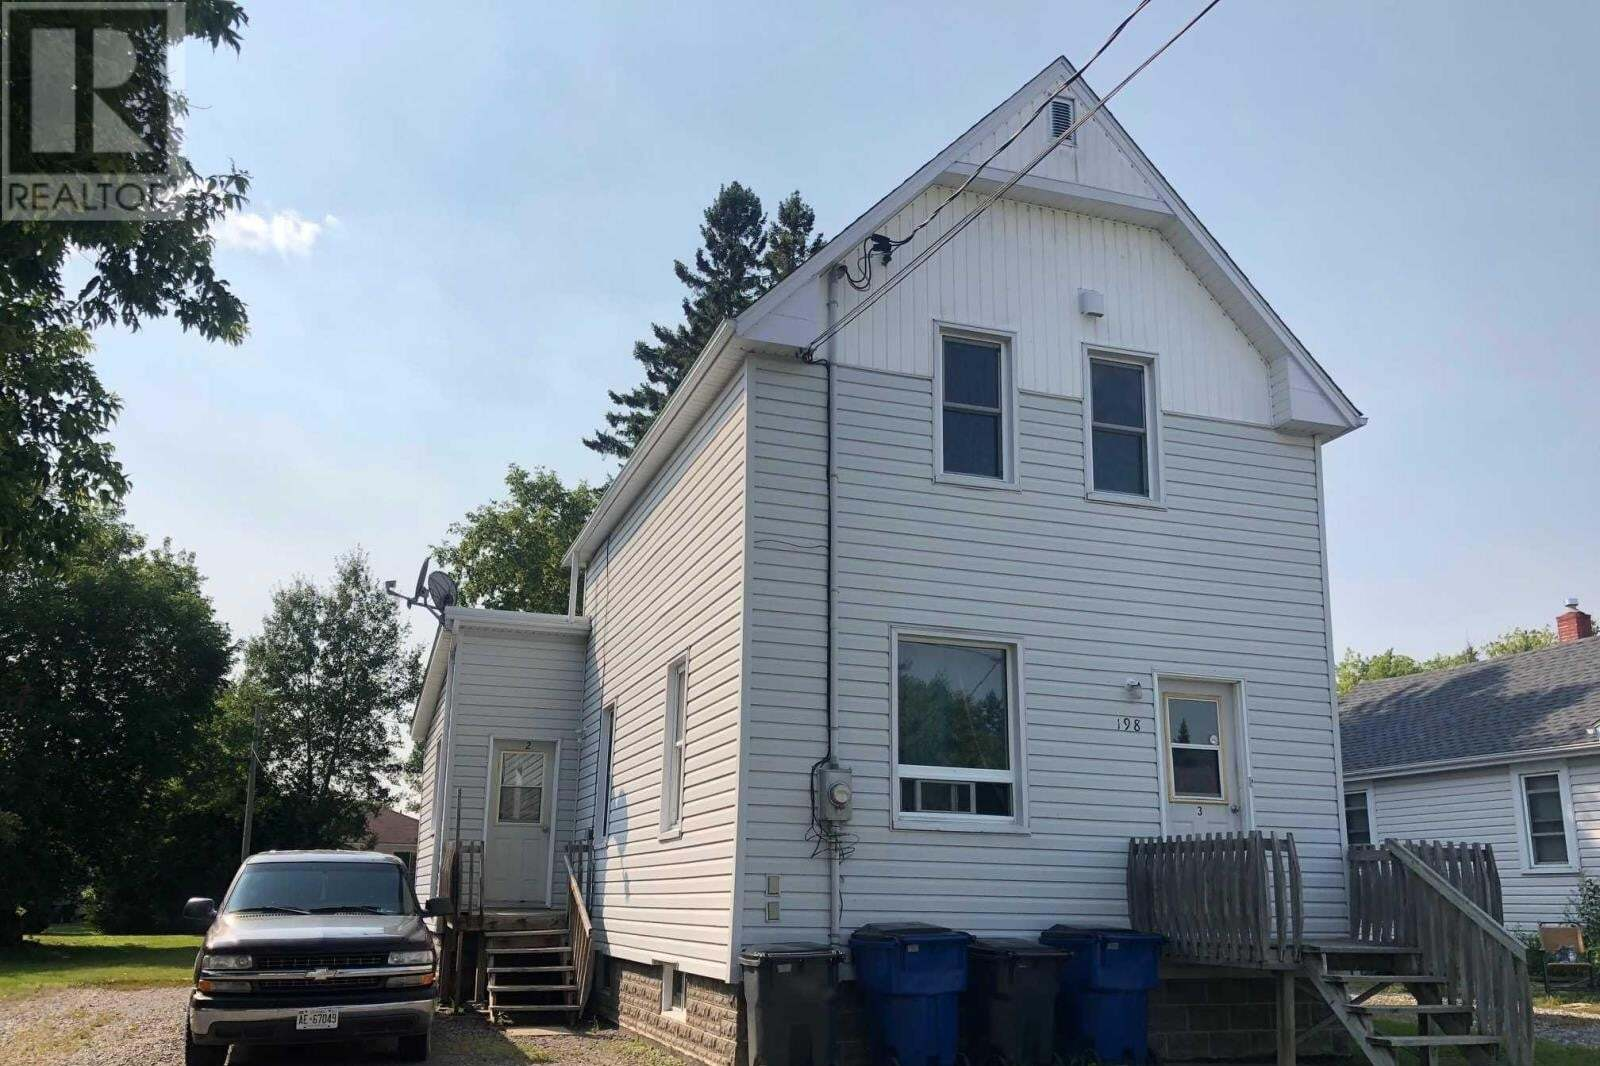 Townhouse for sale at 198 Rebecca St Temiskaming Shores Ontario - MLS: TM200861